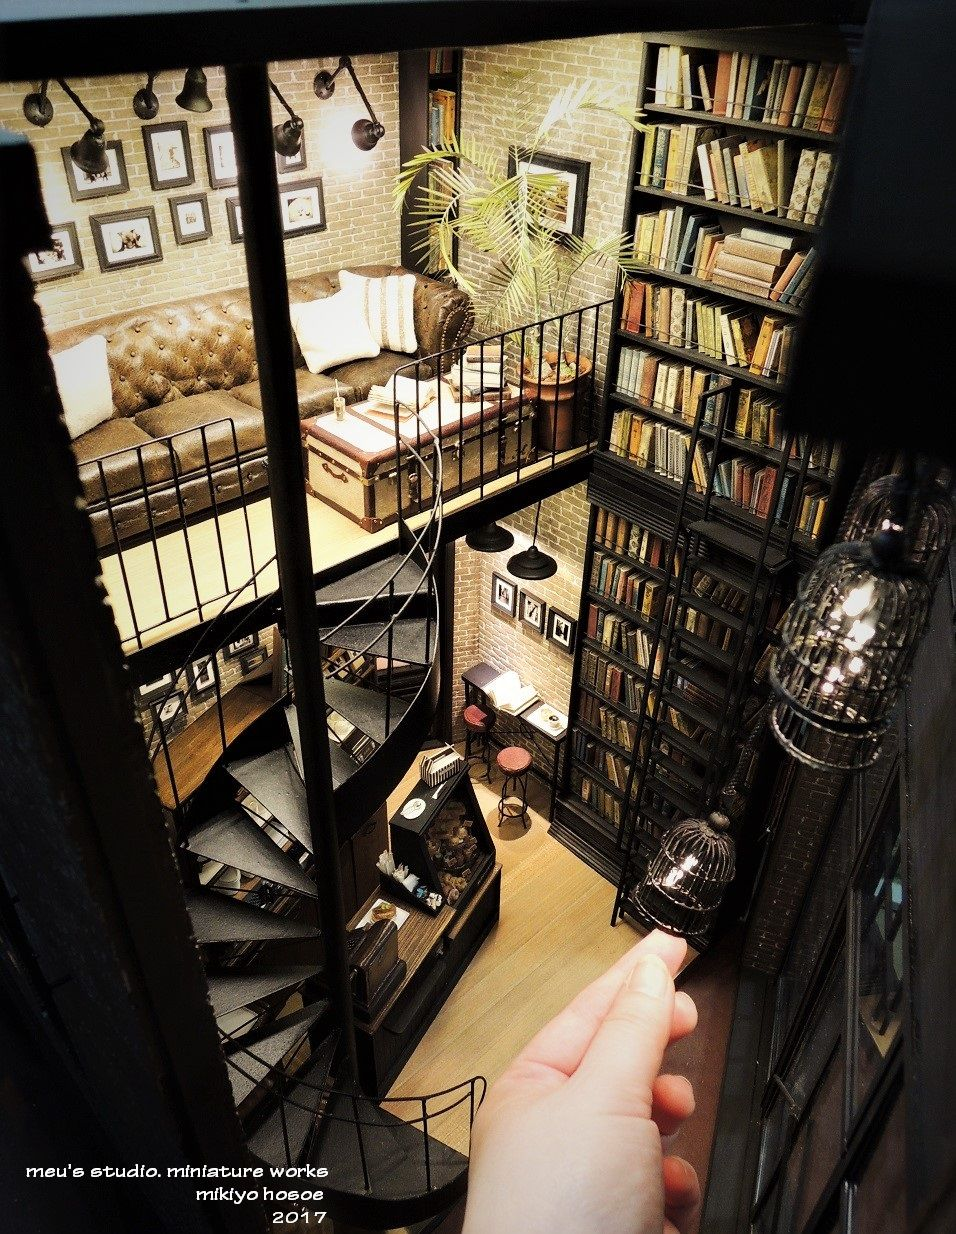 2017, book cafe & gallery miniature ♡♡meru's studio